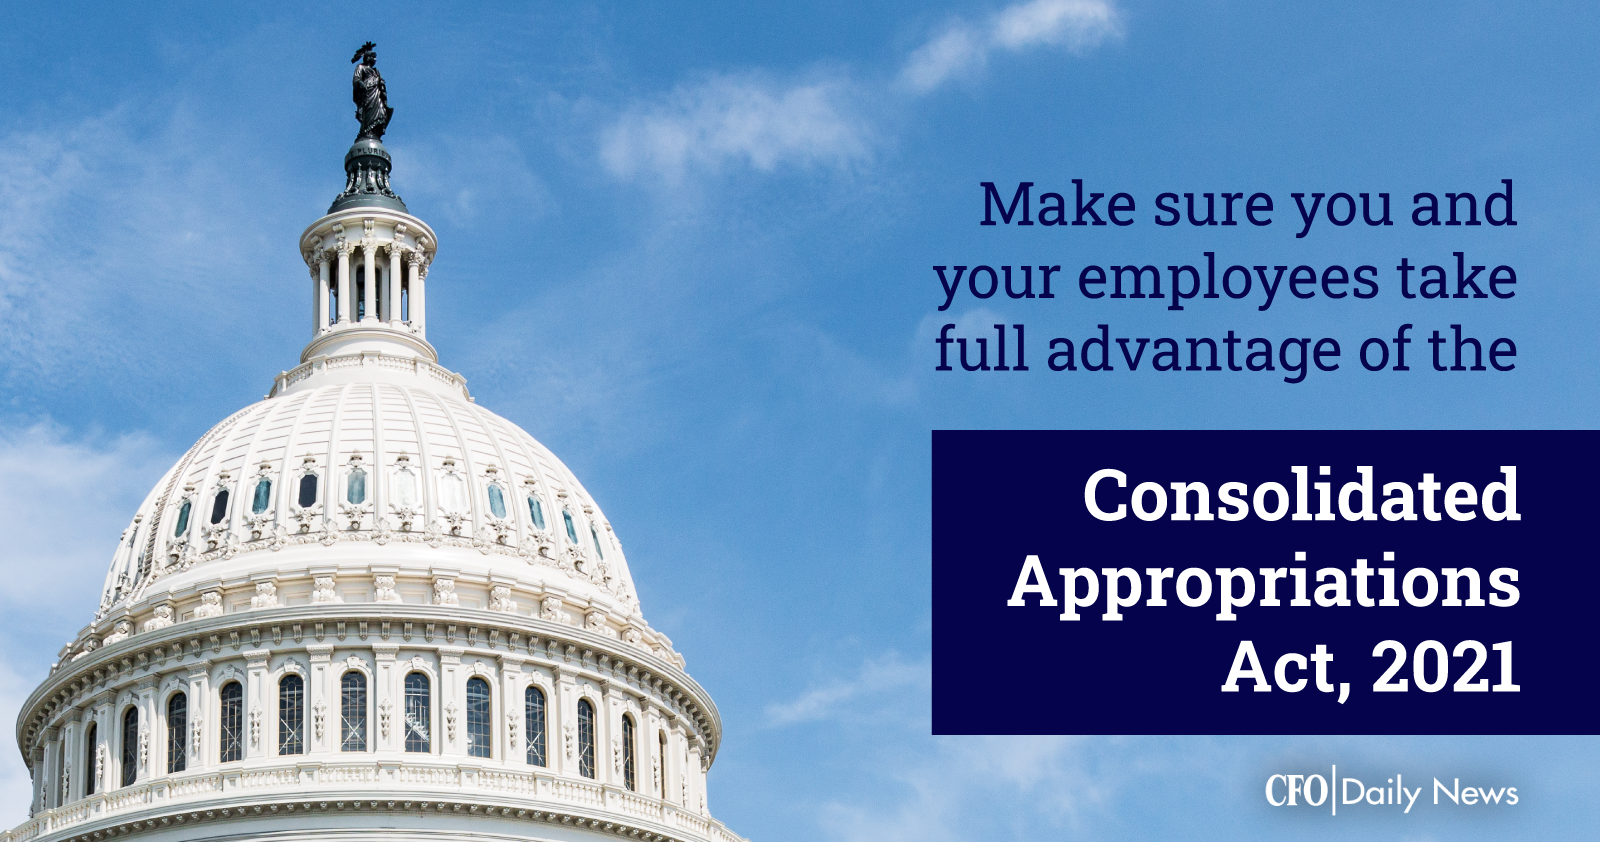 make sure you and your employees take full advantage of the Consolidated Appropriations Act 2021